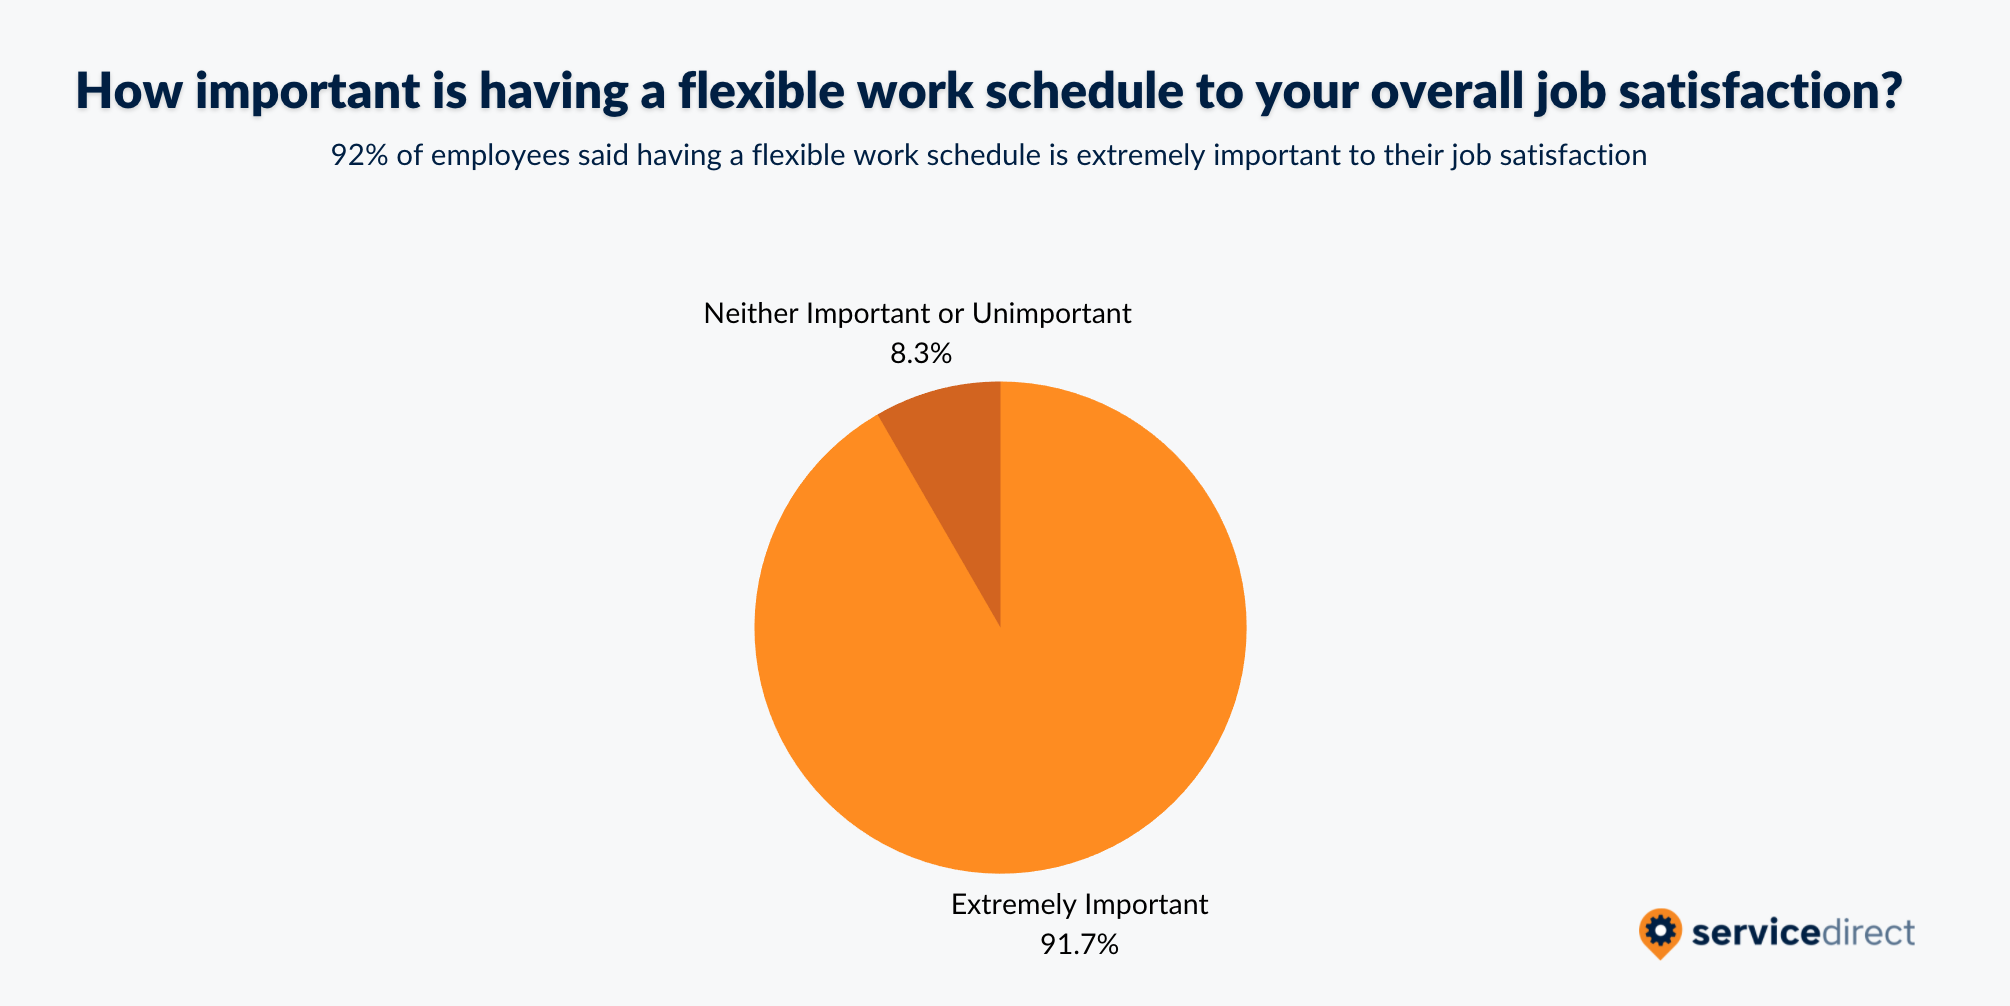 How important is having a flexible work schedule to overall job satisfaction?